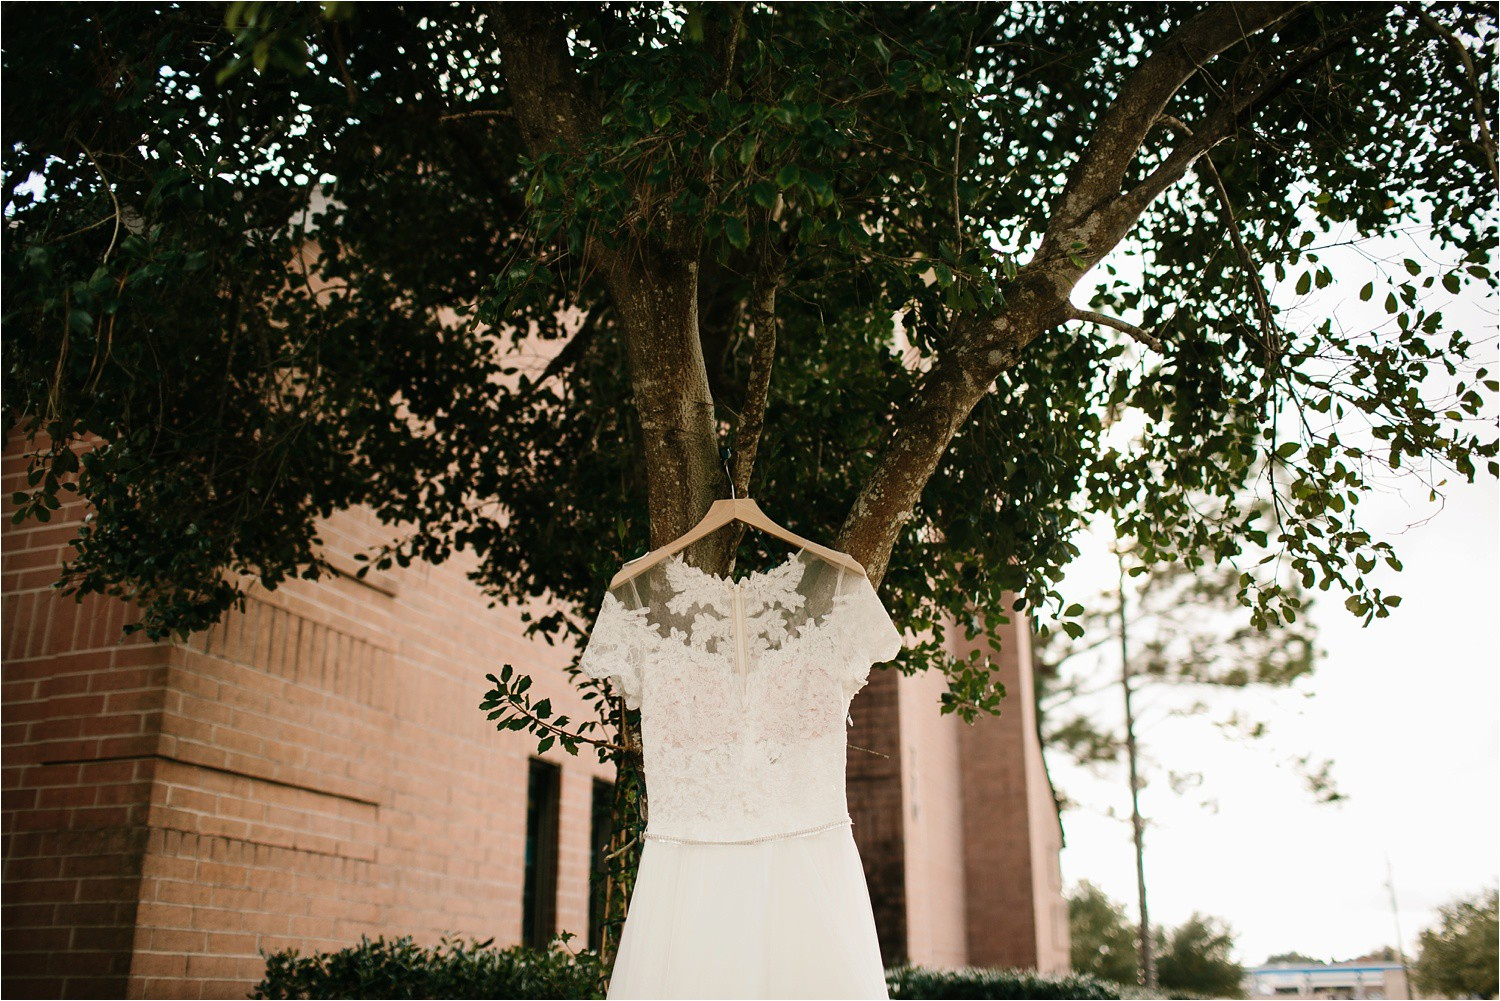 Alaina + Josh __ a wintertime wedding in Houston, TX with Christmas accents and a BHLDN dress by North Texas Wedding Photographer Rachel Meagan Photography _ 01